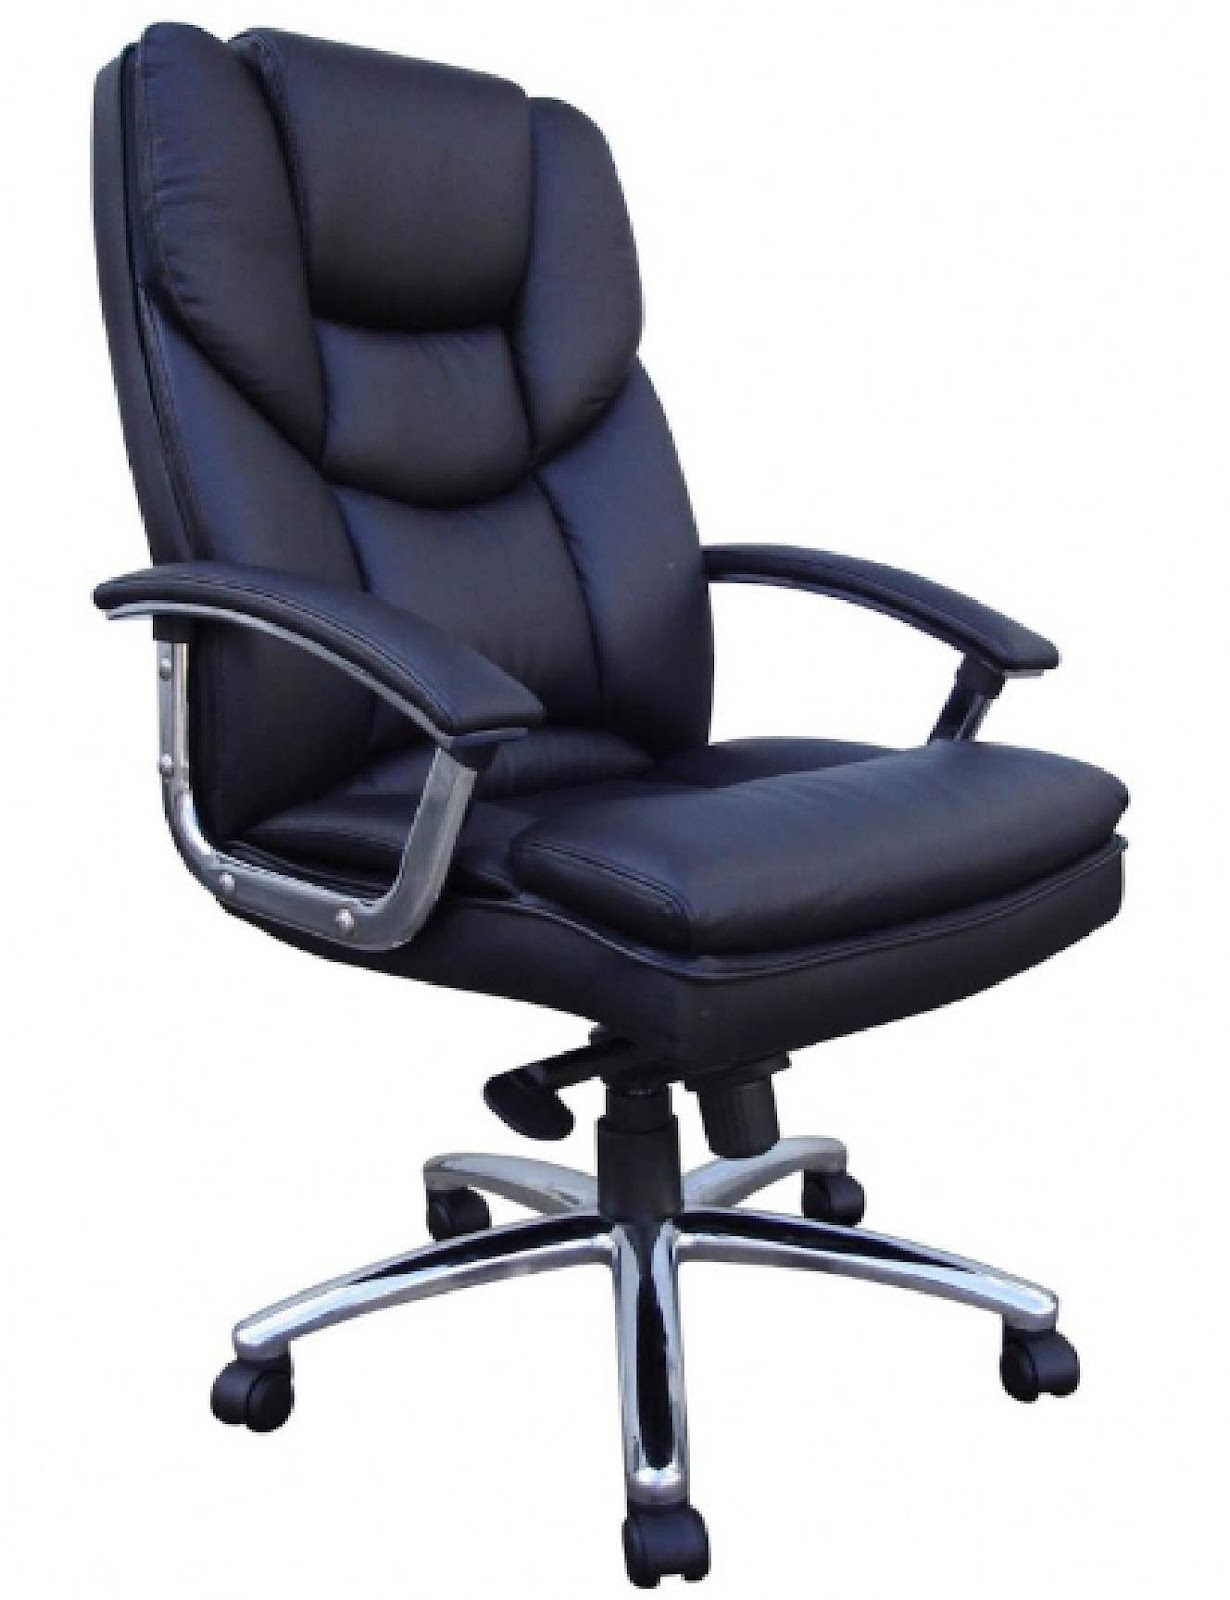 Comfortable office chairs designs an interior design - Chairs design ...